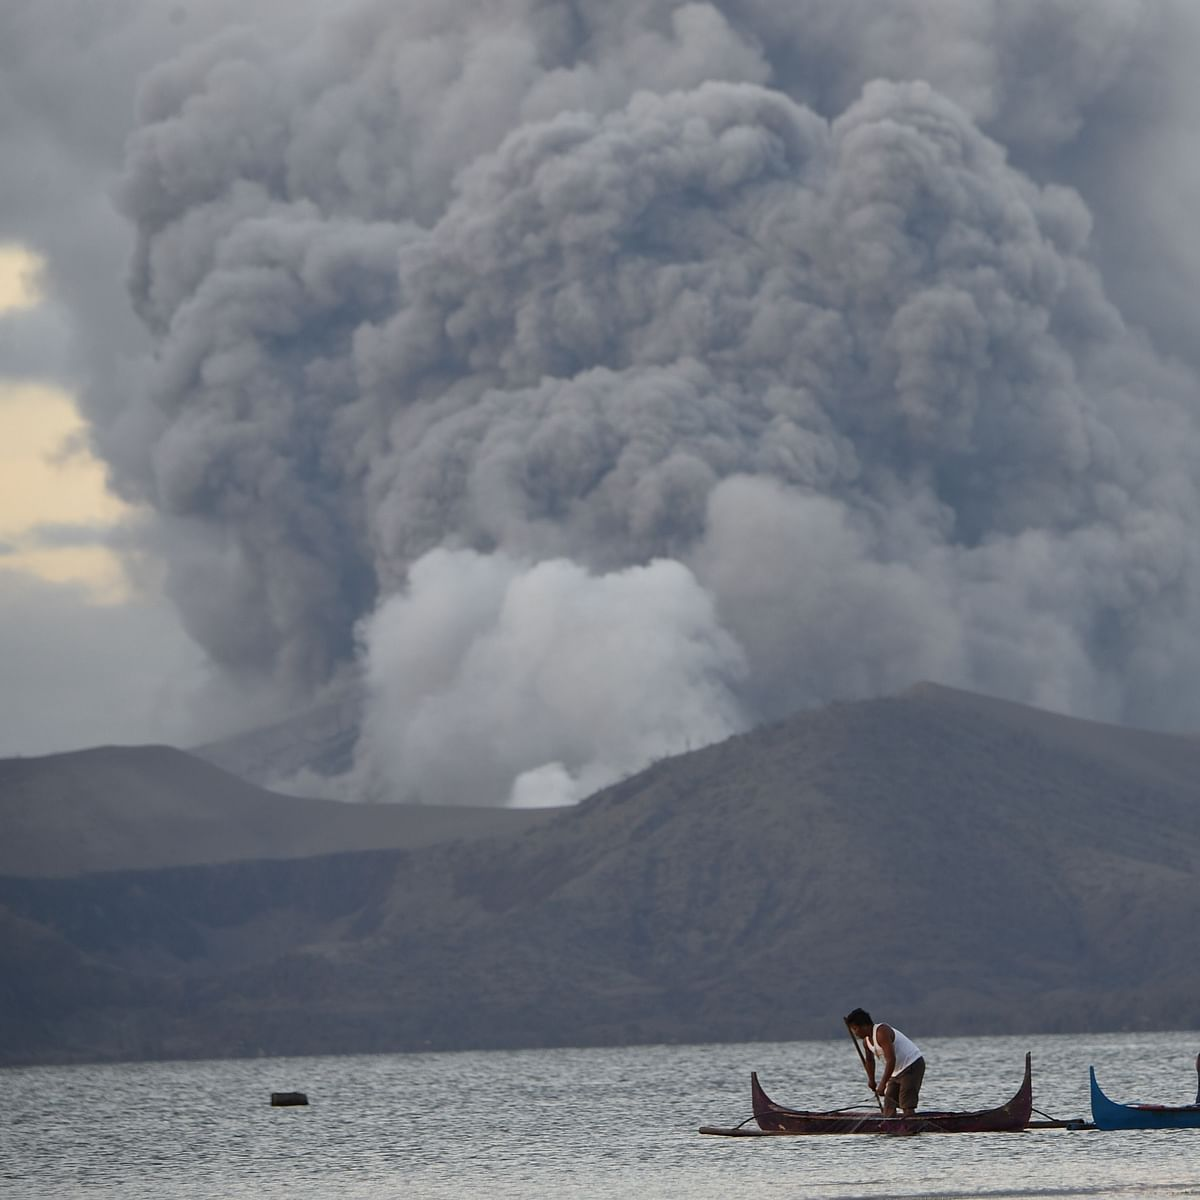 Philippines' volcano threat high despite 'lull'